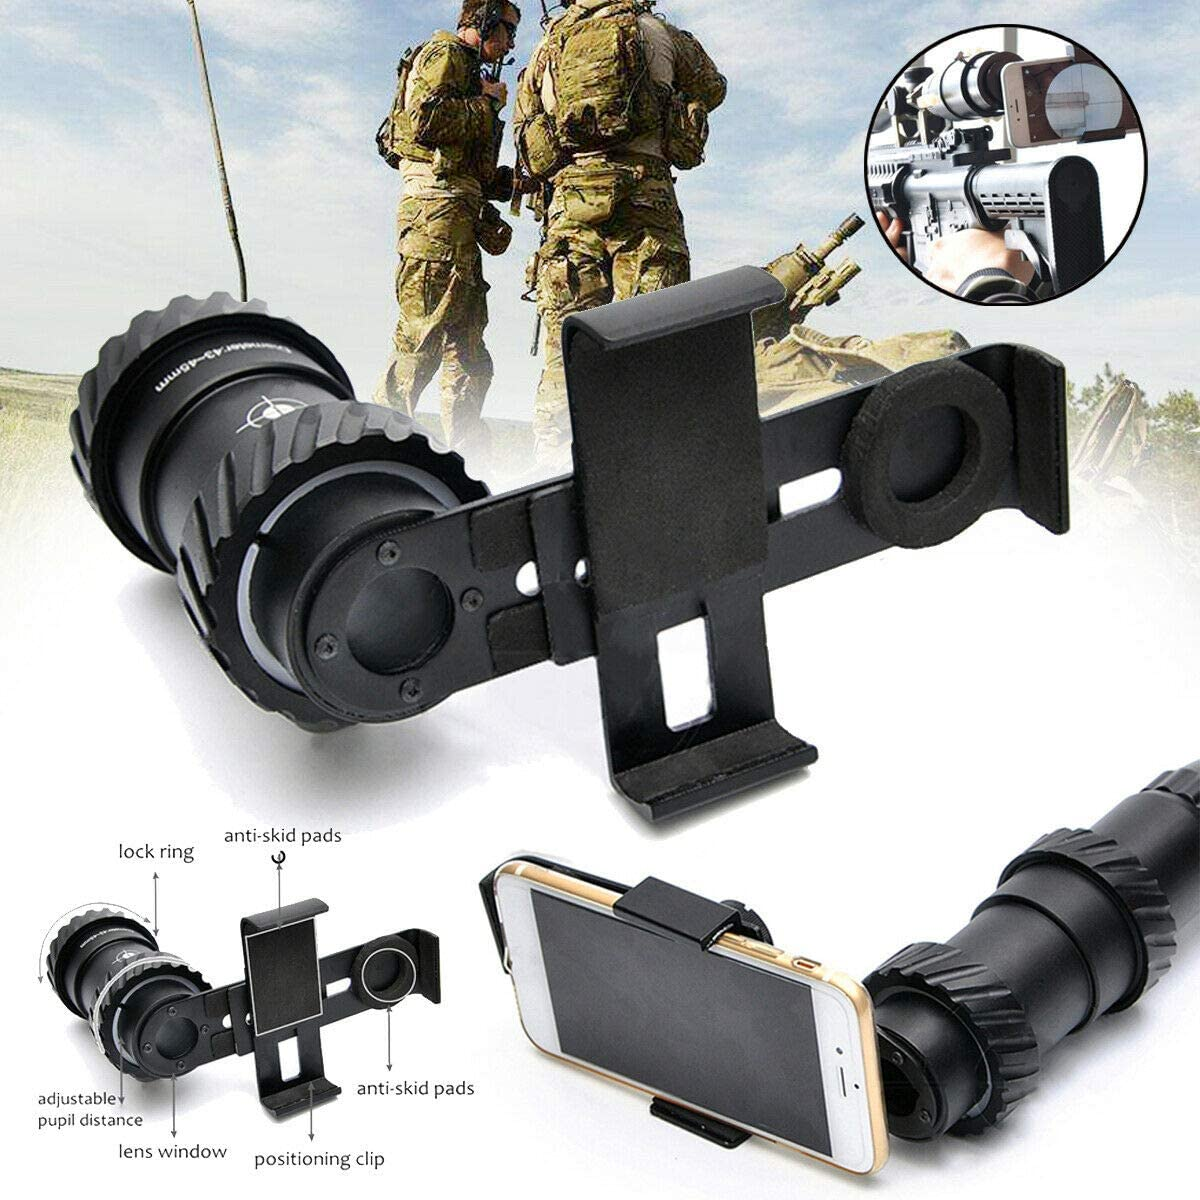 Universal Cell Phone Adapter Mount Camera Mount Telescope Phone Holder for Tactical Rifle Spotting Scope